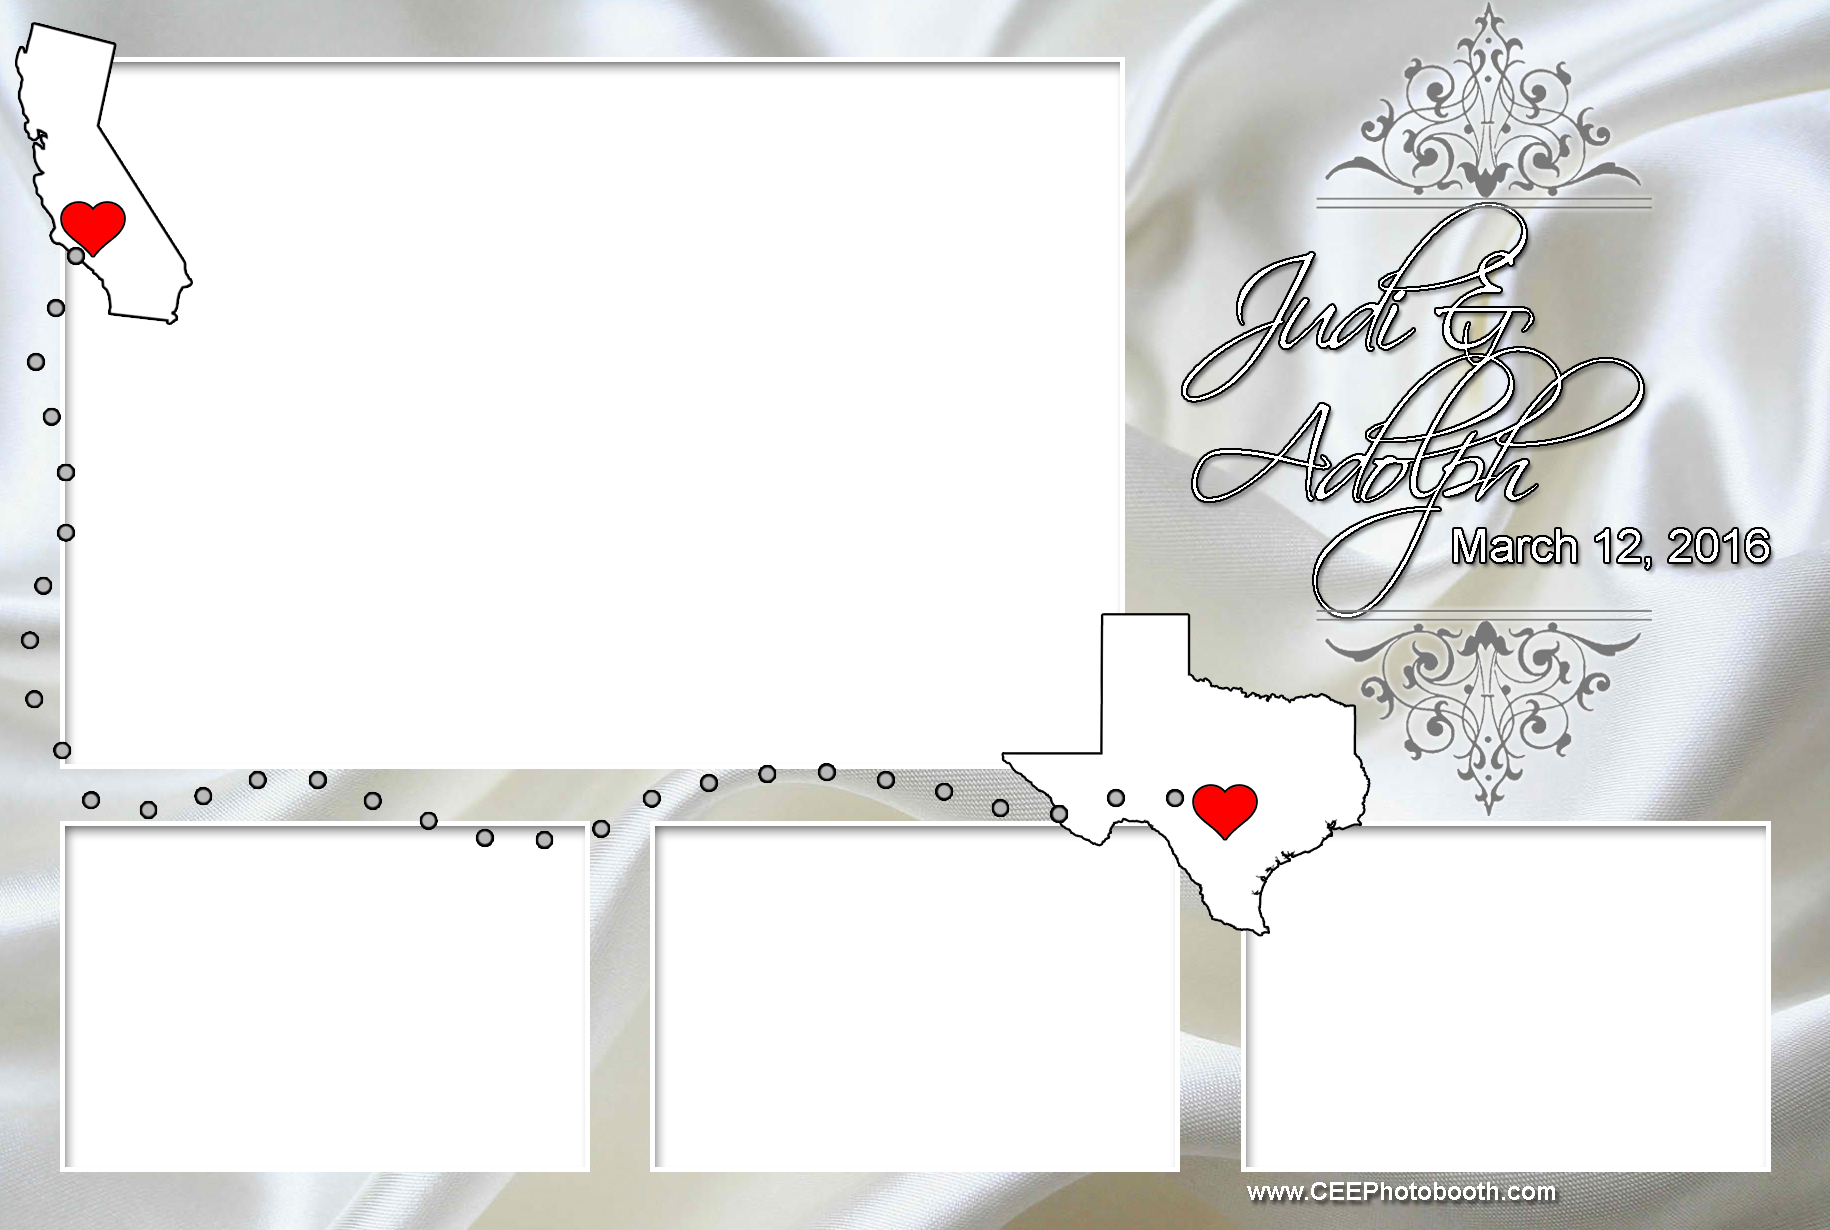 wedding photo booth layout 8